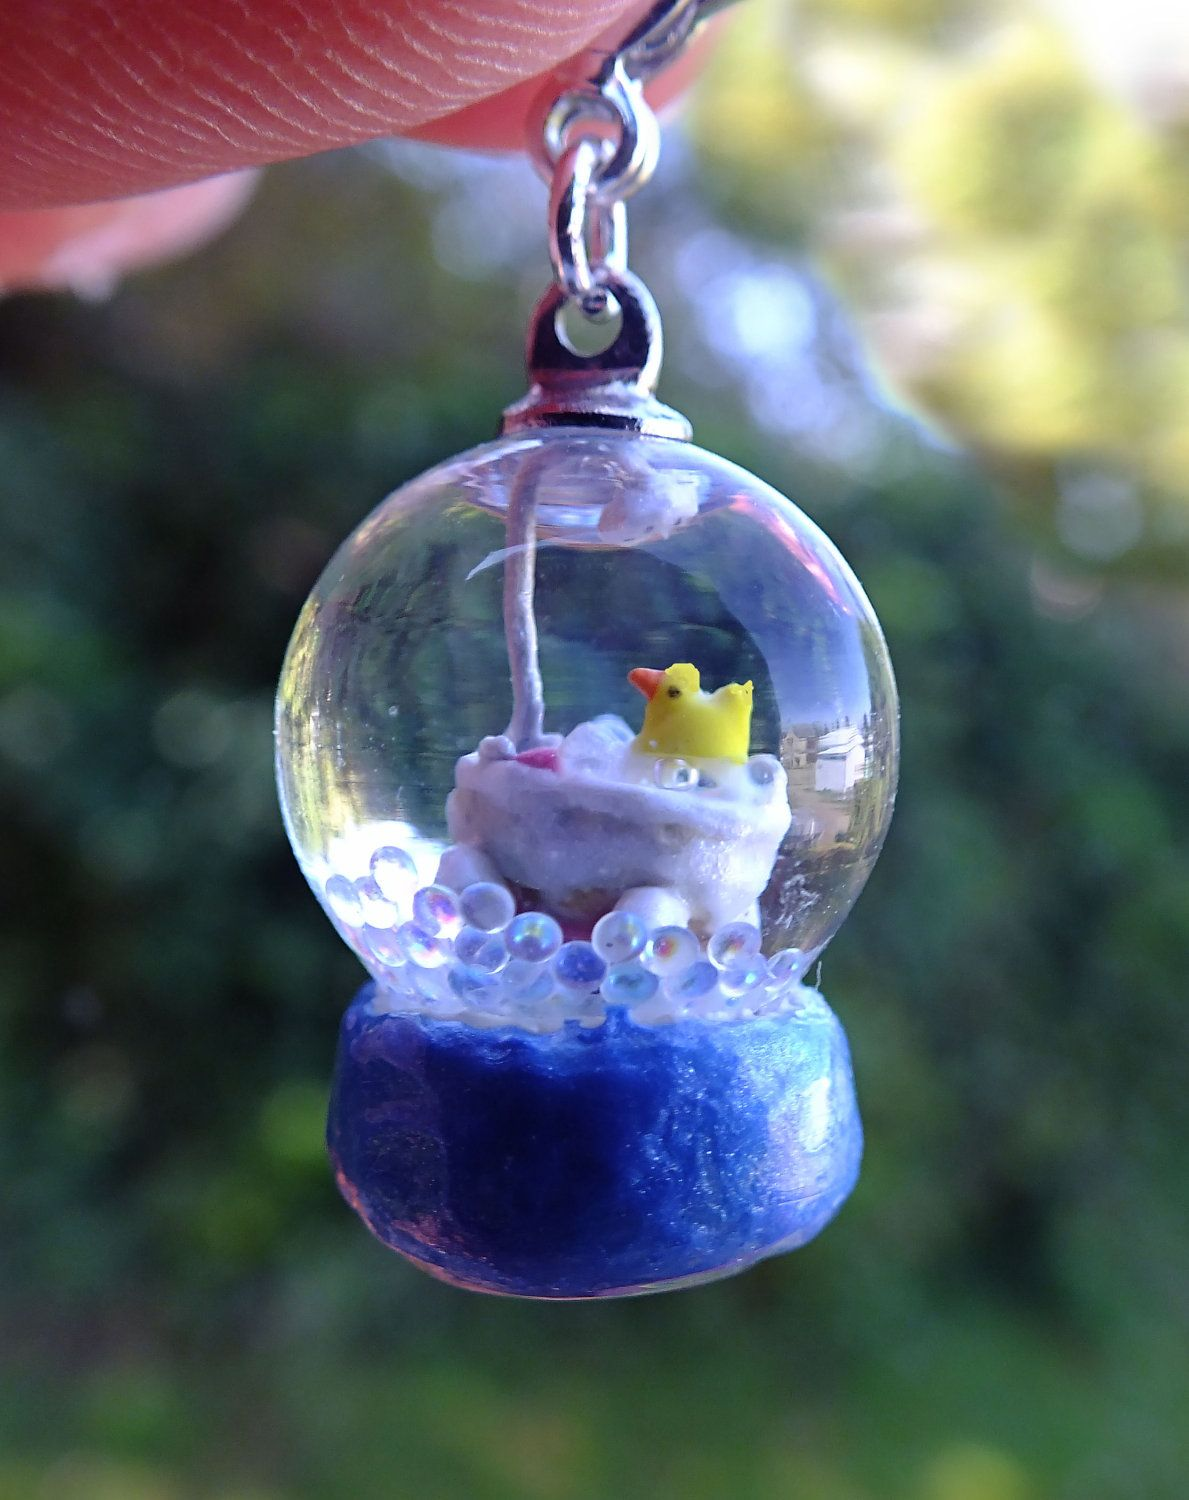 Miniature Real Working GLASS Snowglobe Rubber Ducky